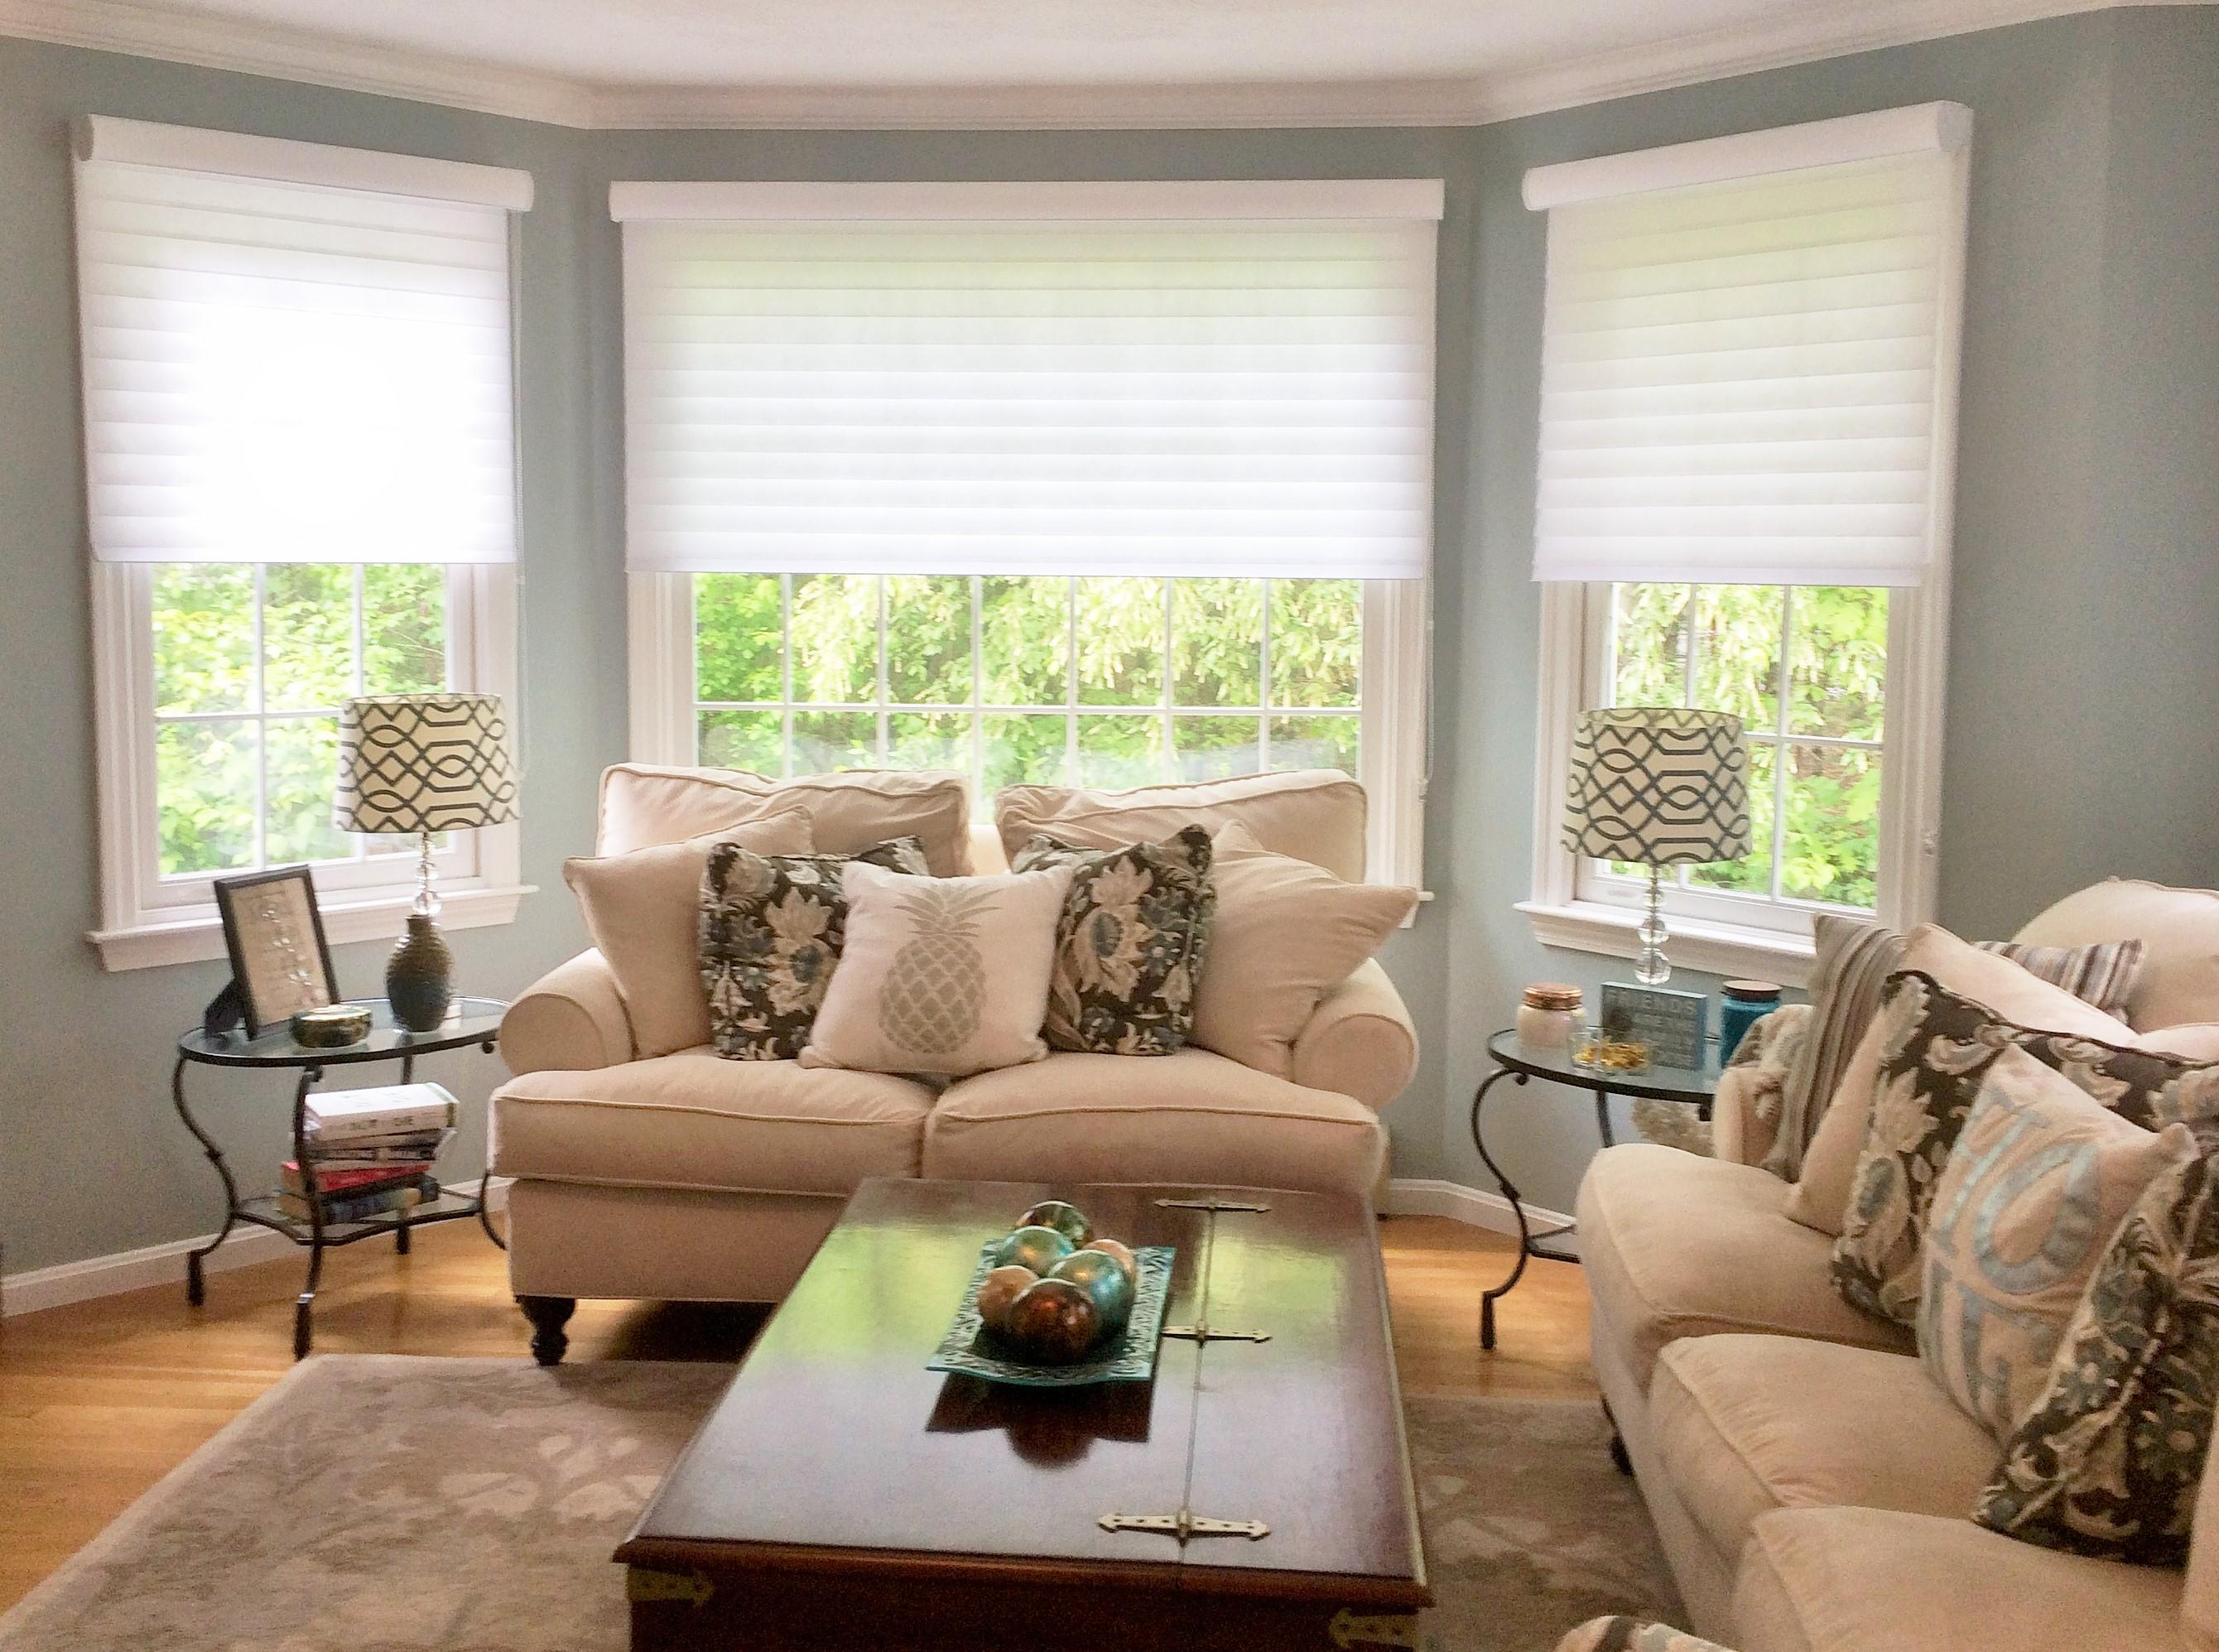 Budget blinds north attleboro massachusetts ma for Budget blinds motorized shades